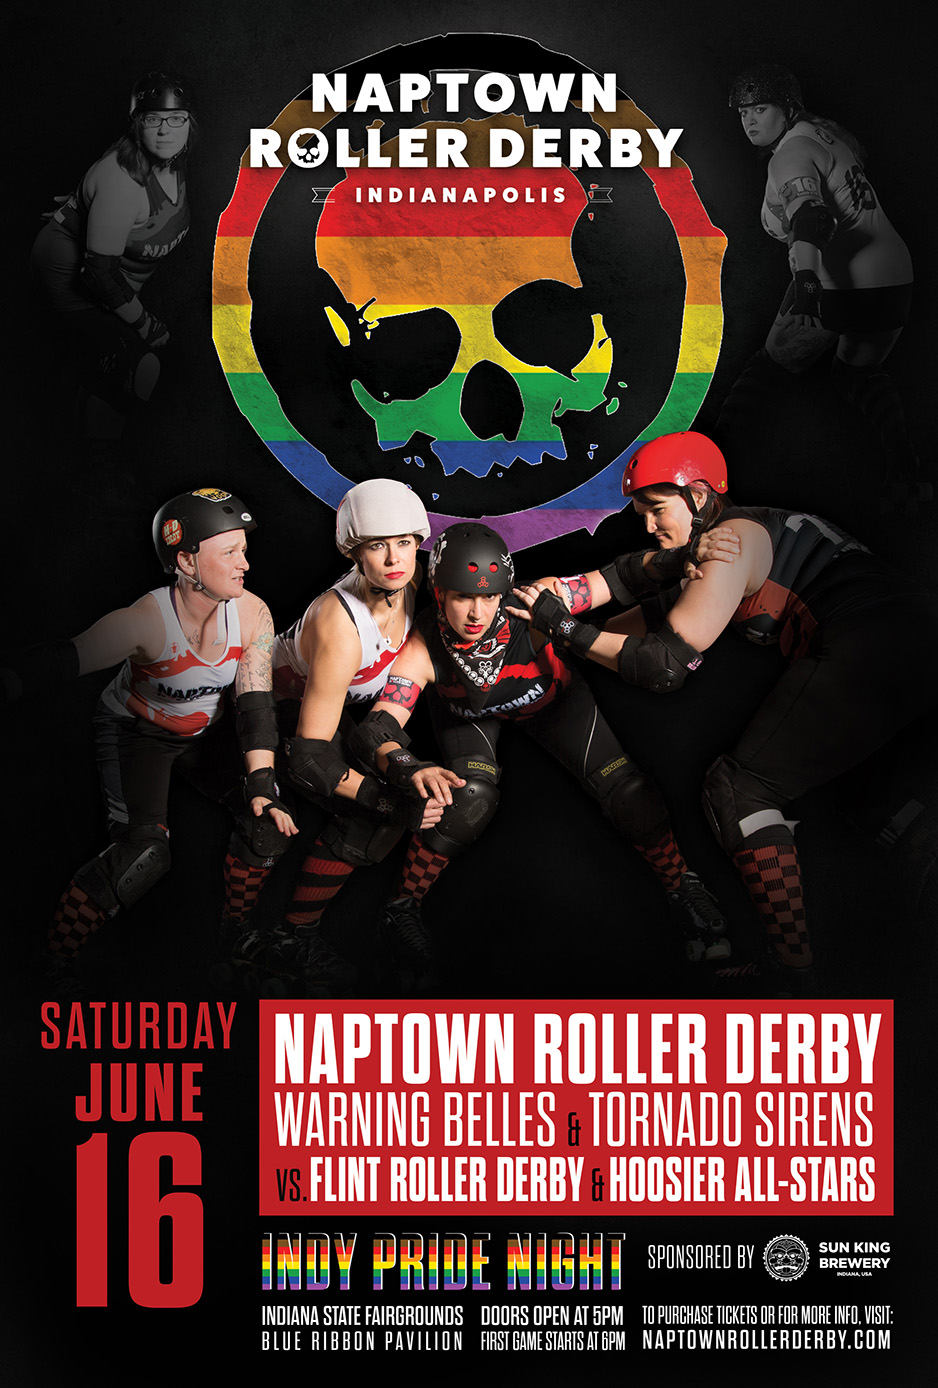 June 16, 2018 - Naptown's 5th Home Bout!